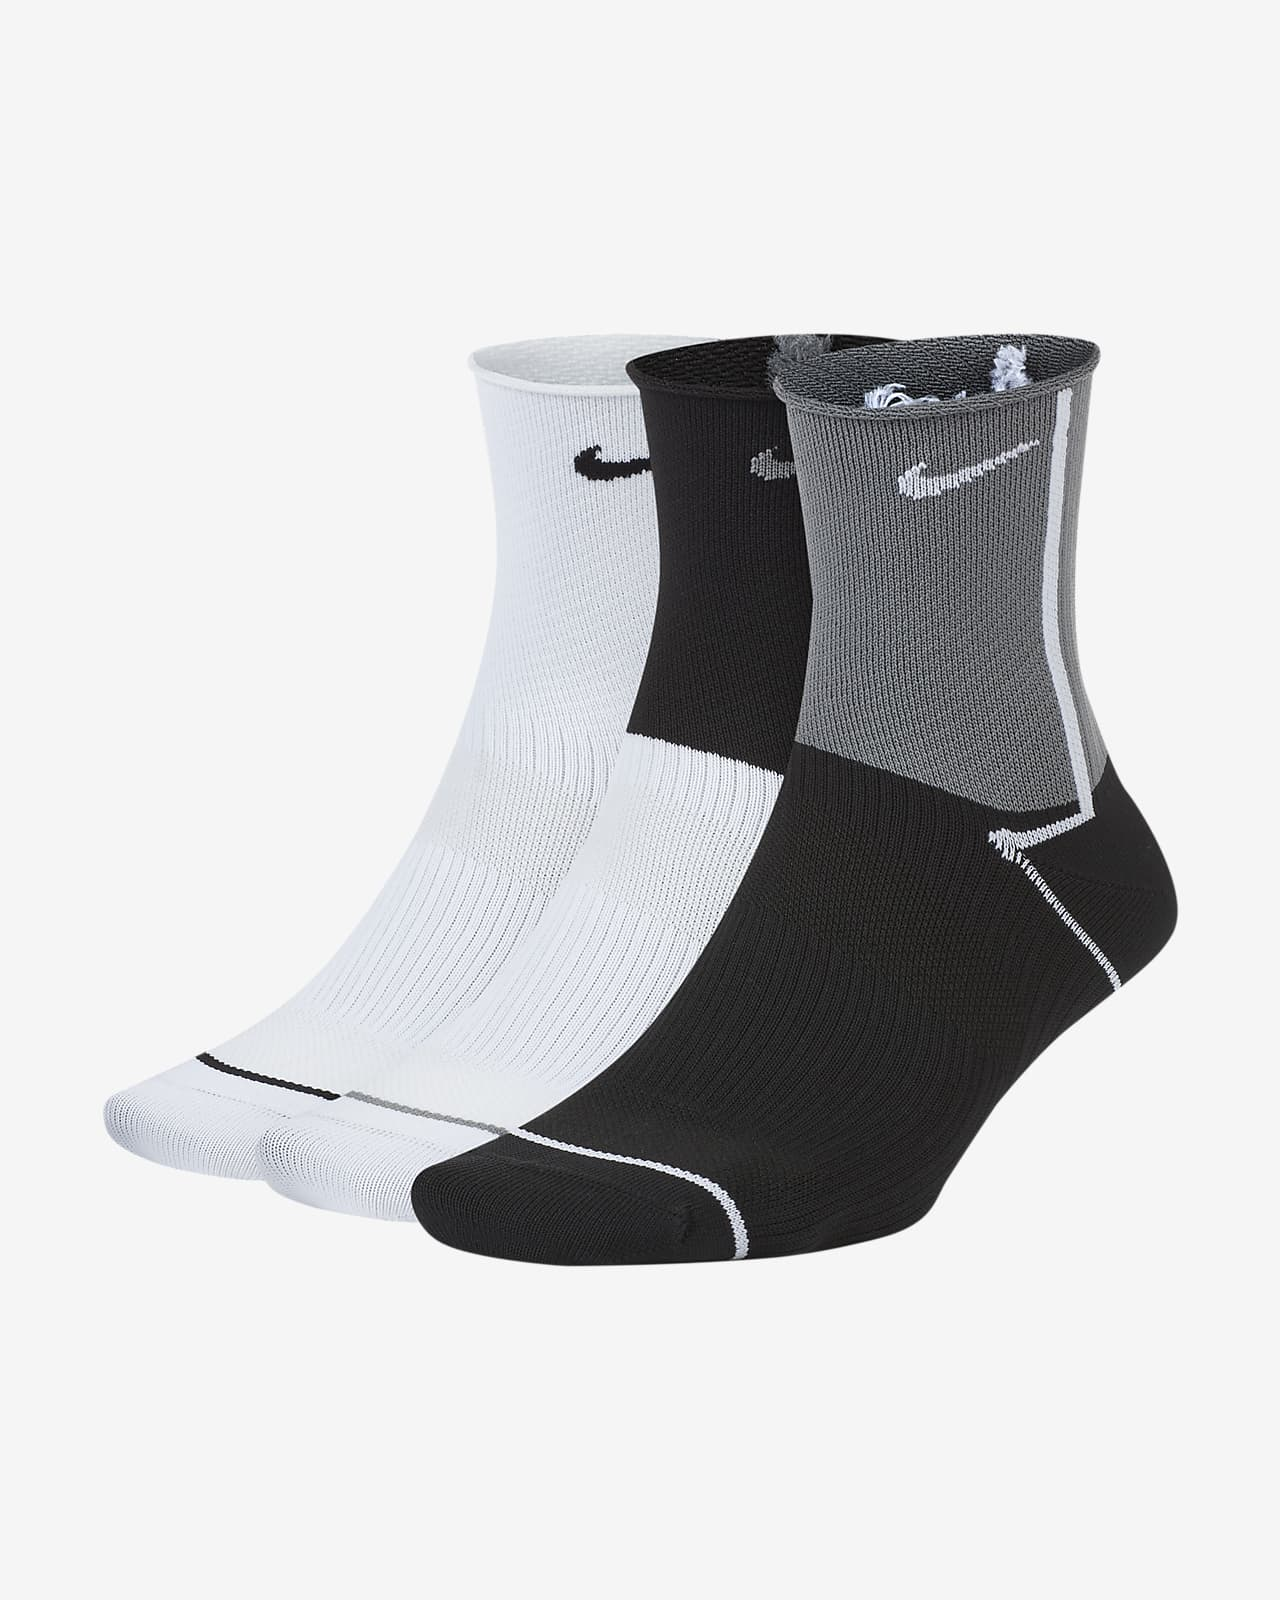 Nike Everyday Plus Lightweight Trainings-Knöchelsocken für Damen (3 Paar)